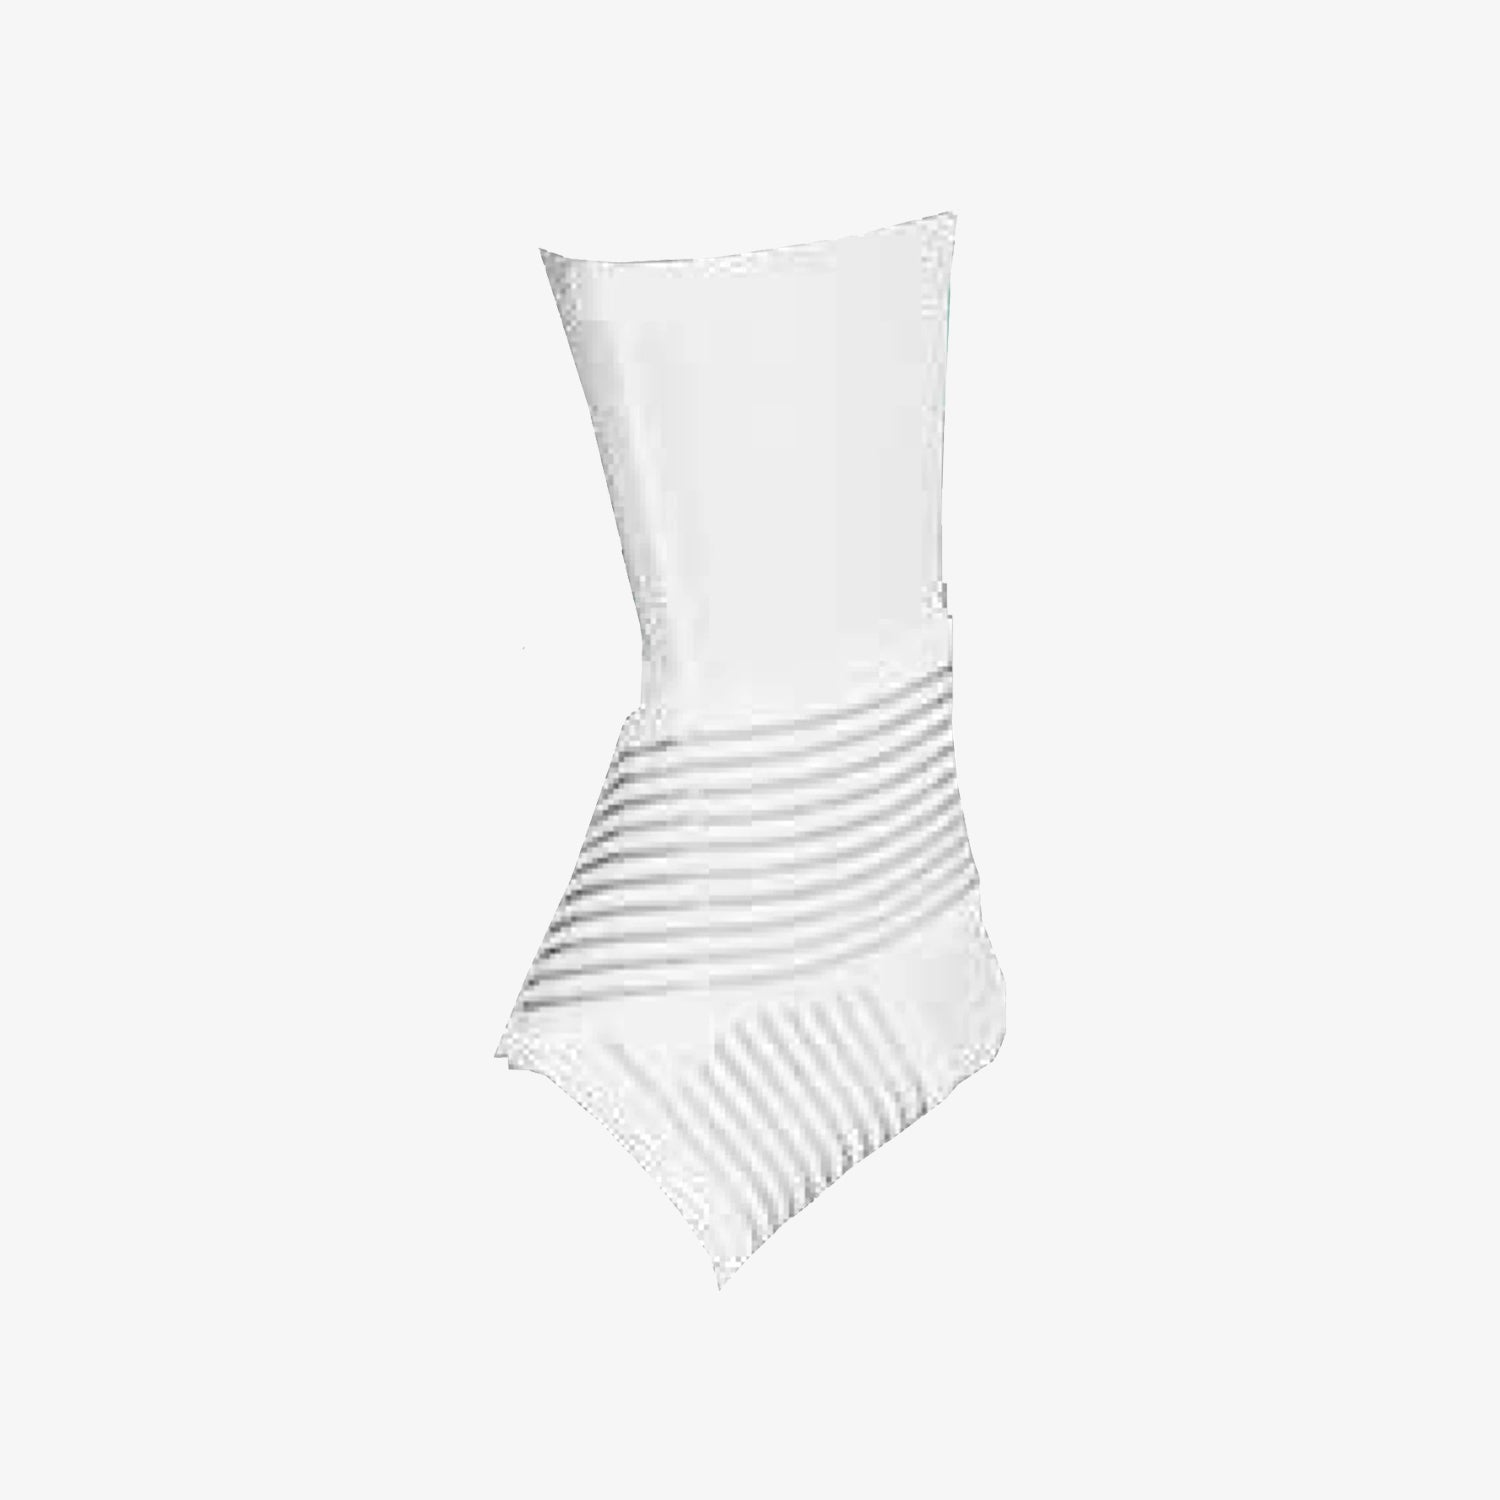 Ankle Support Small - Medium